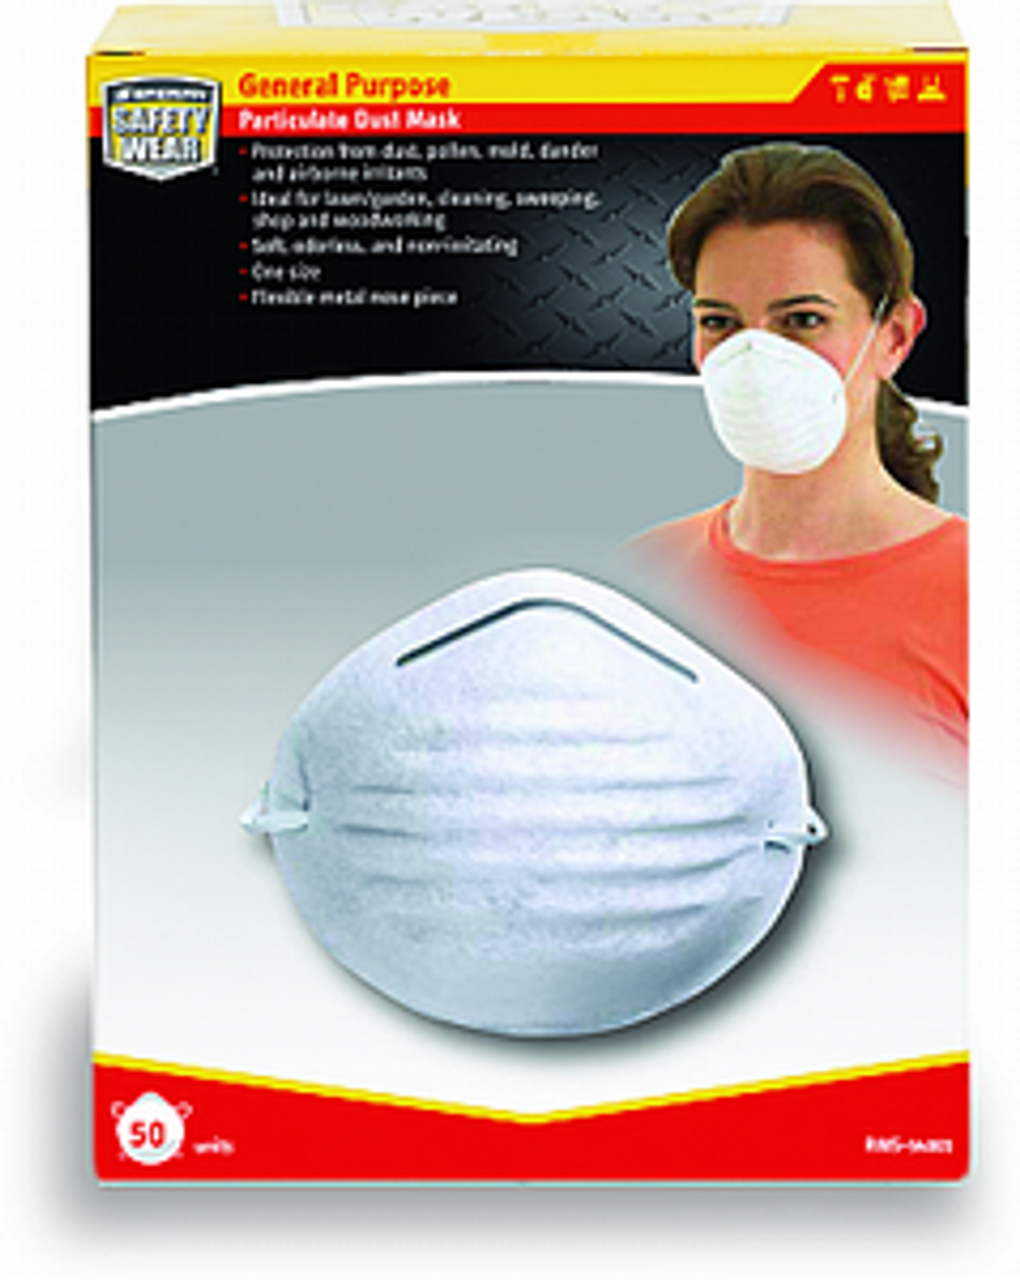 Honeywell RWS-54001 Dust Mask 50 Pk - 50ct. Case